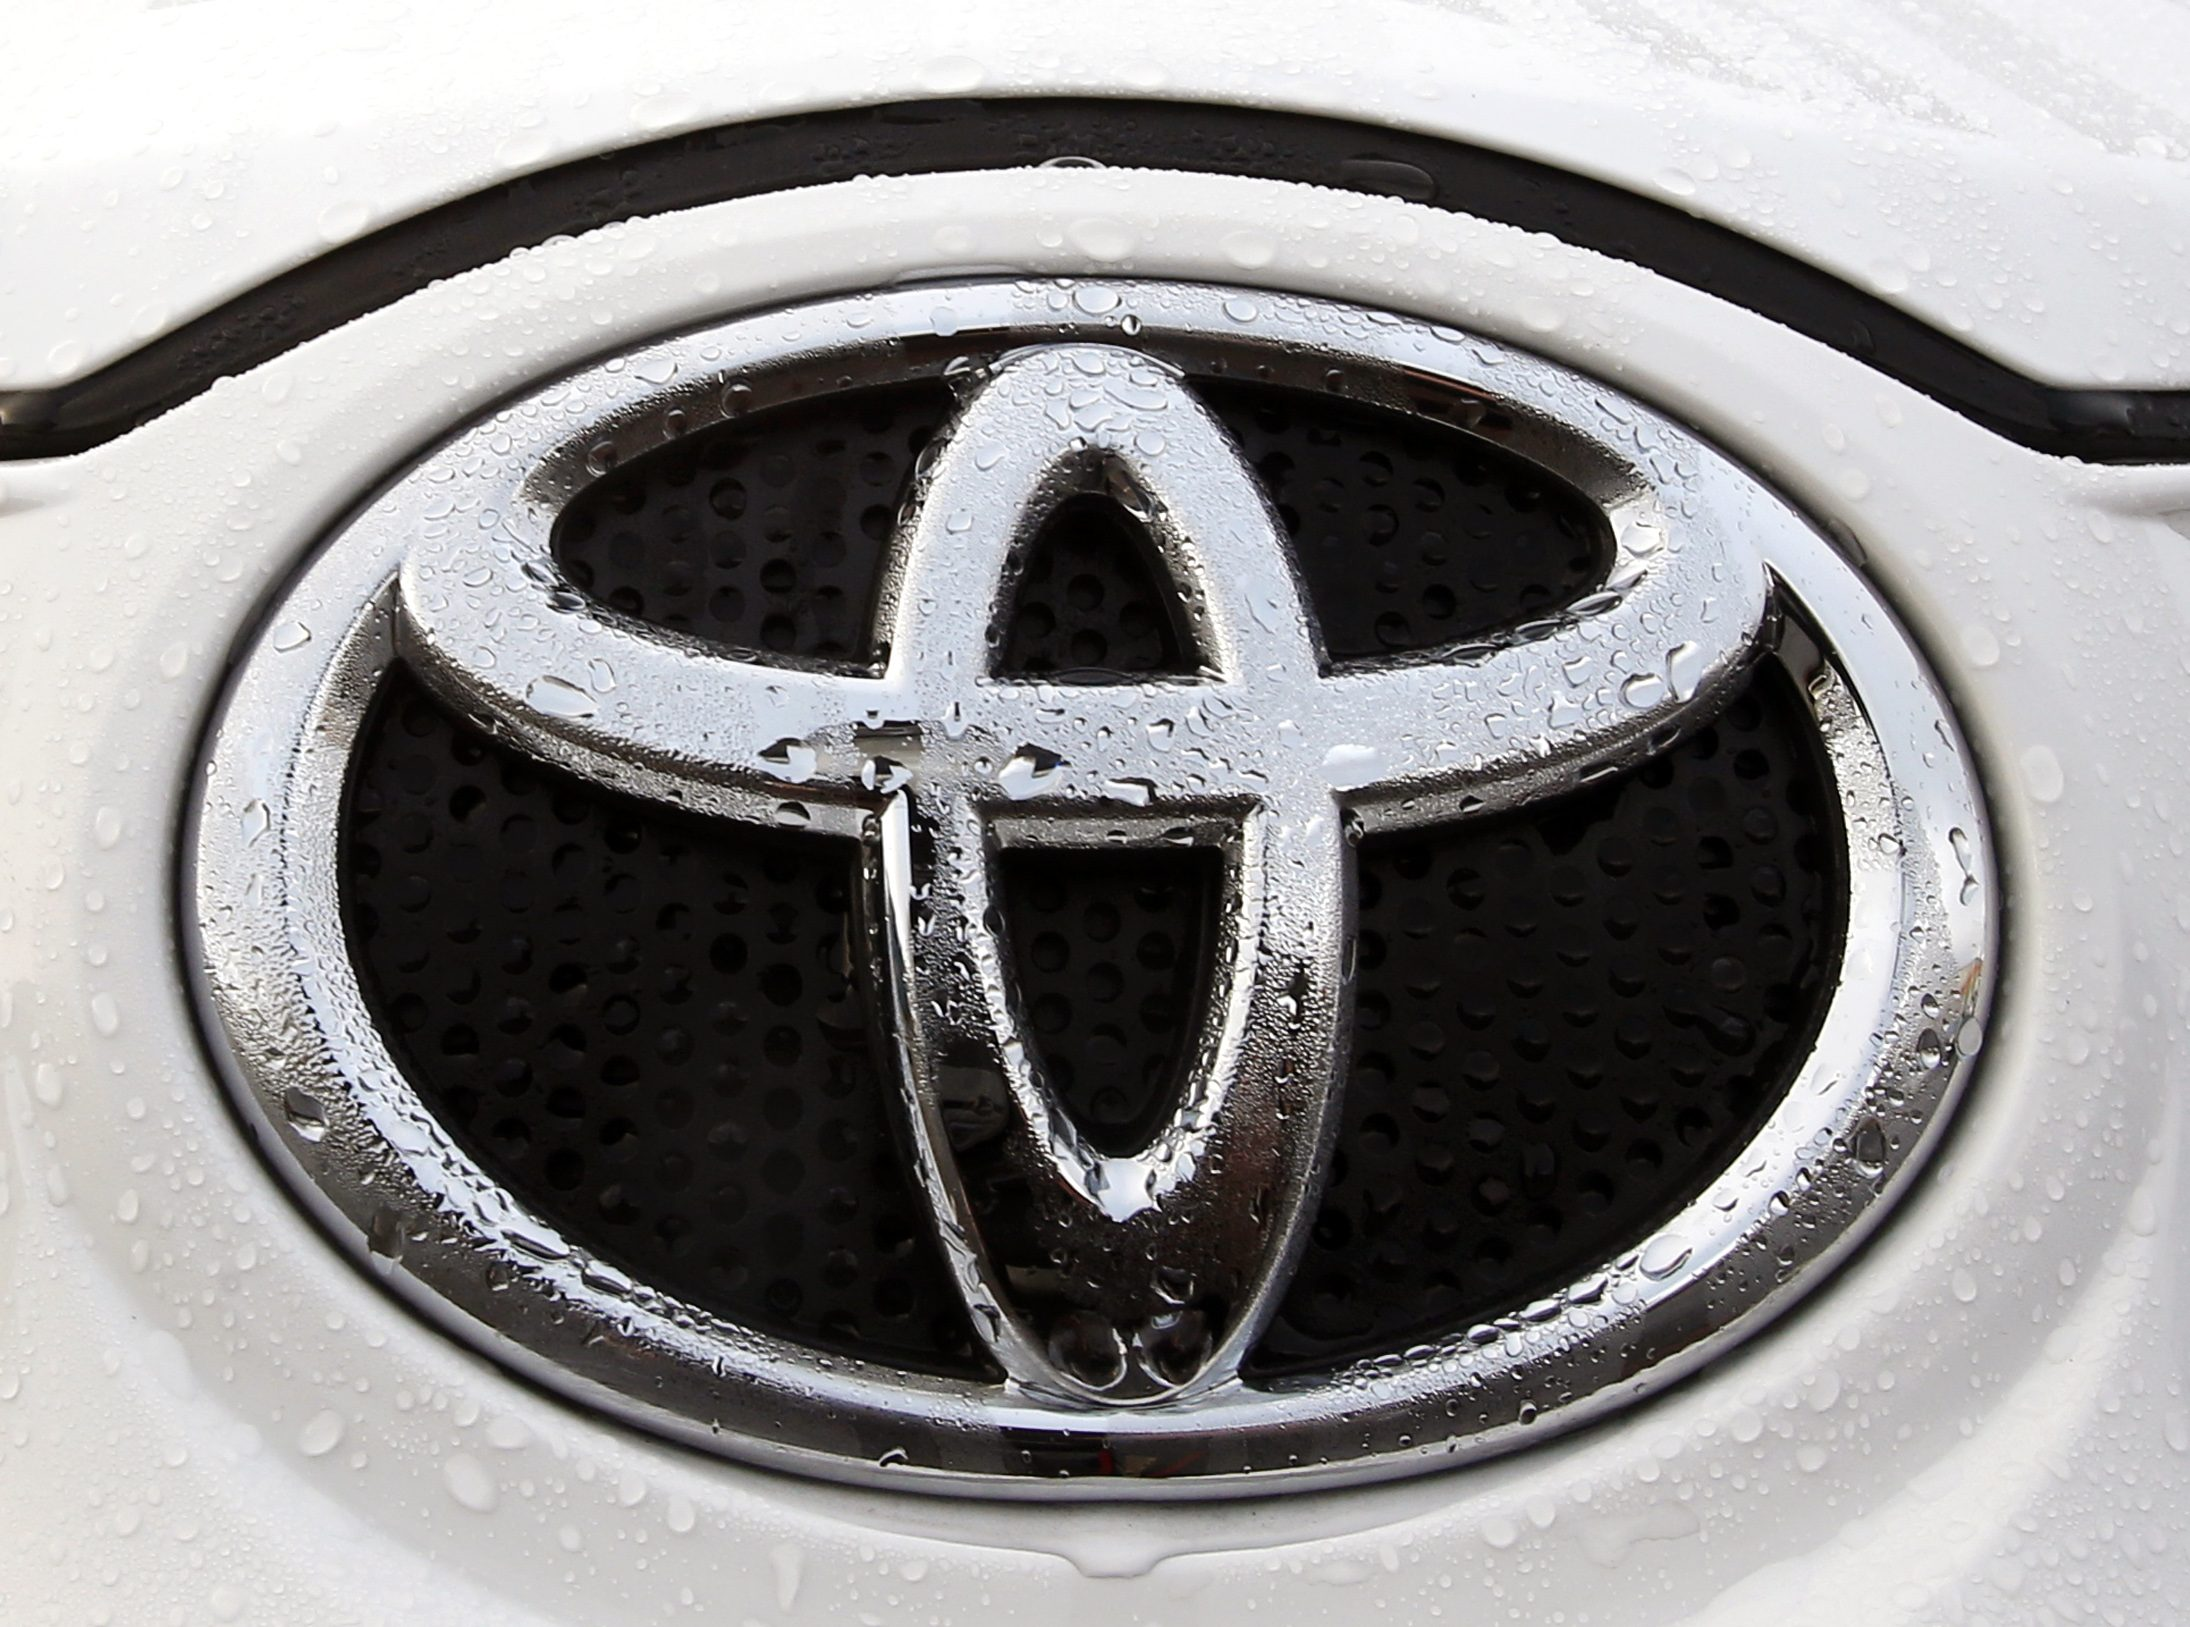 Singapore's most popular Japanese car brand has proven itself over the years, but Toyota cars lack excitement and imagination, and do not rank very high in fun quotient.